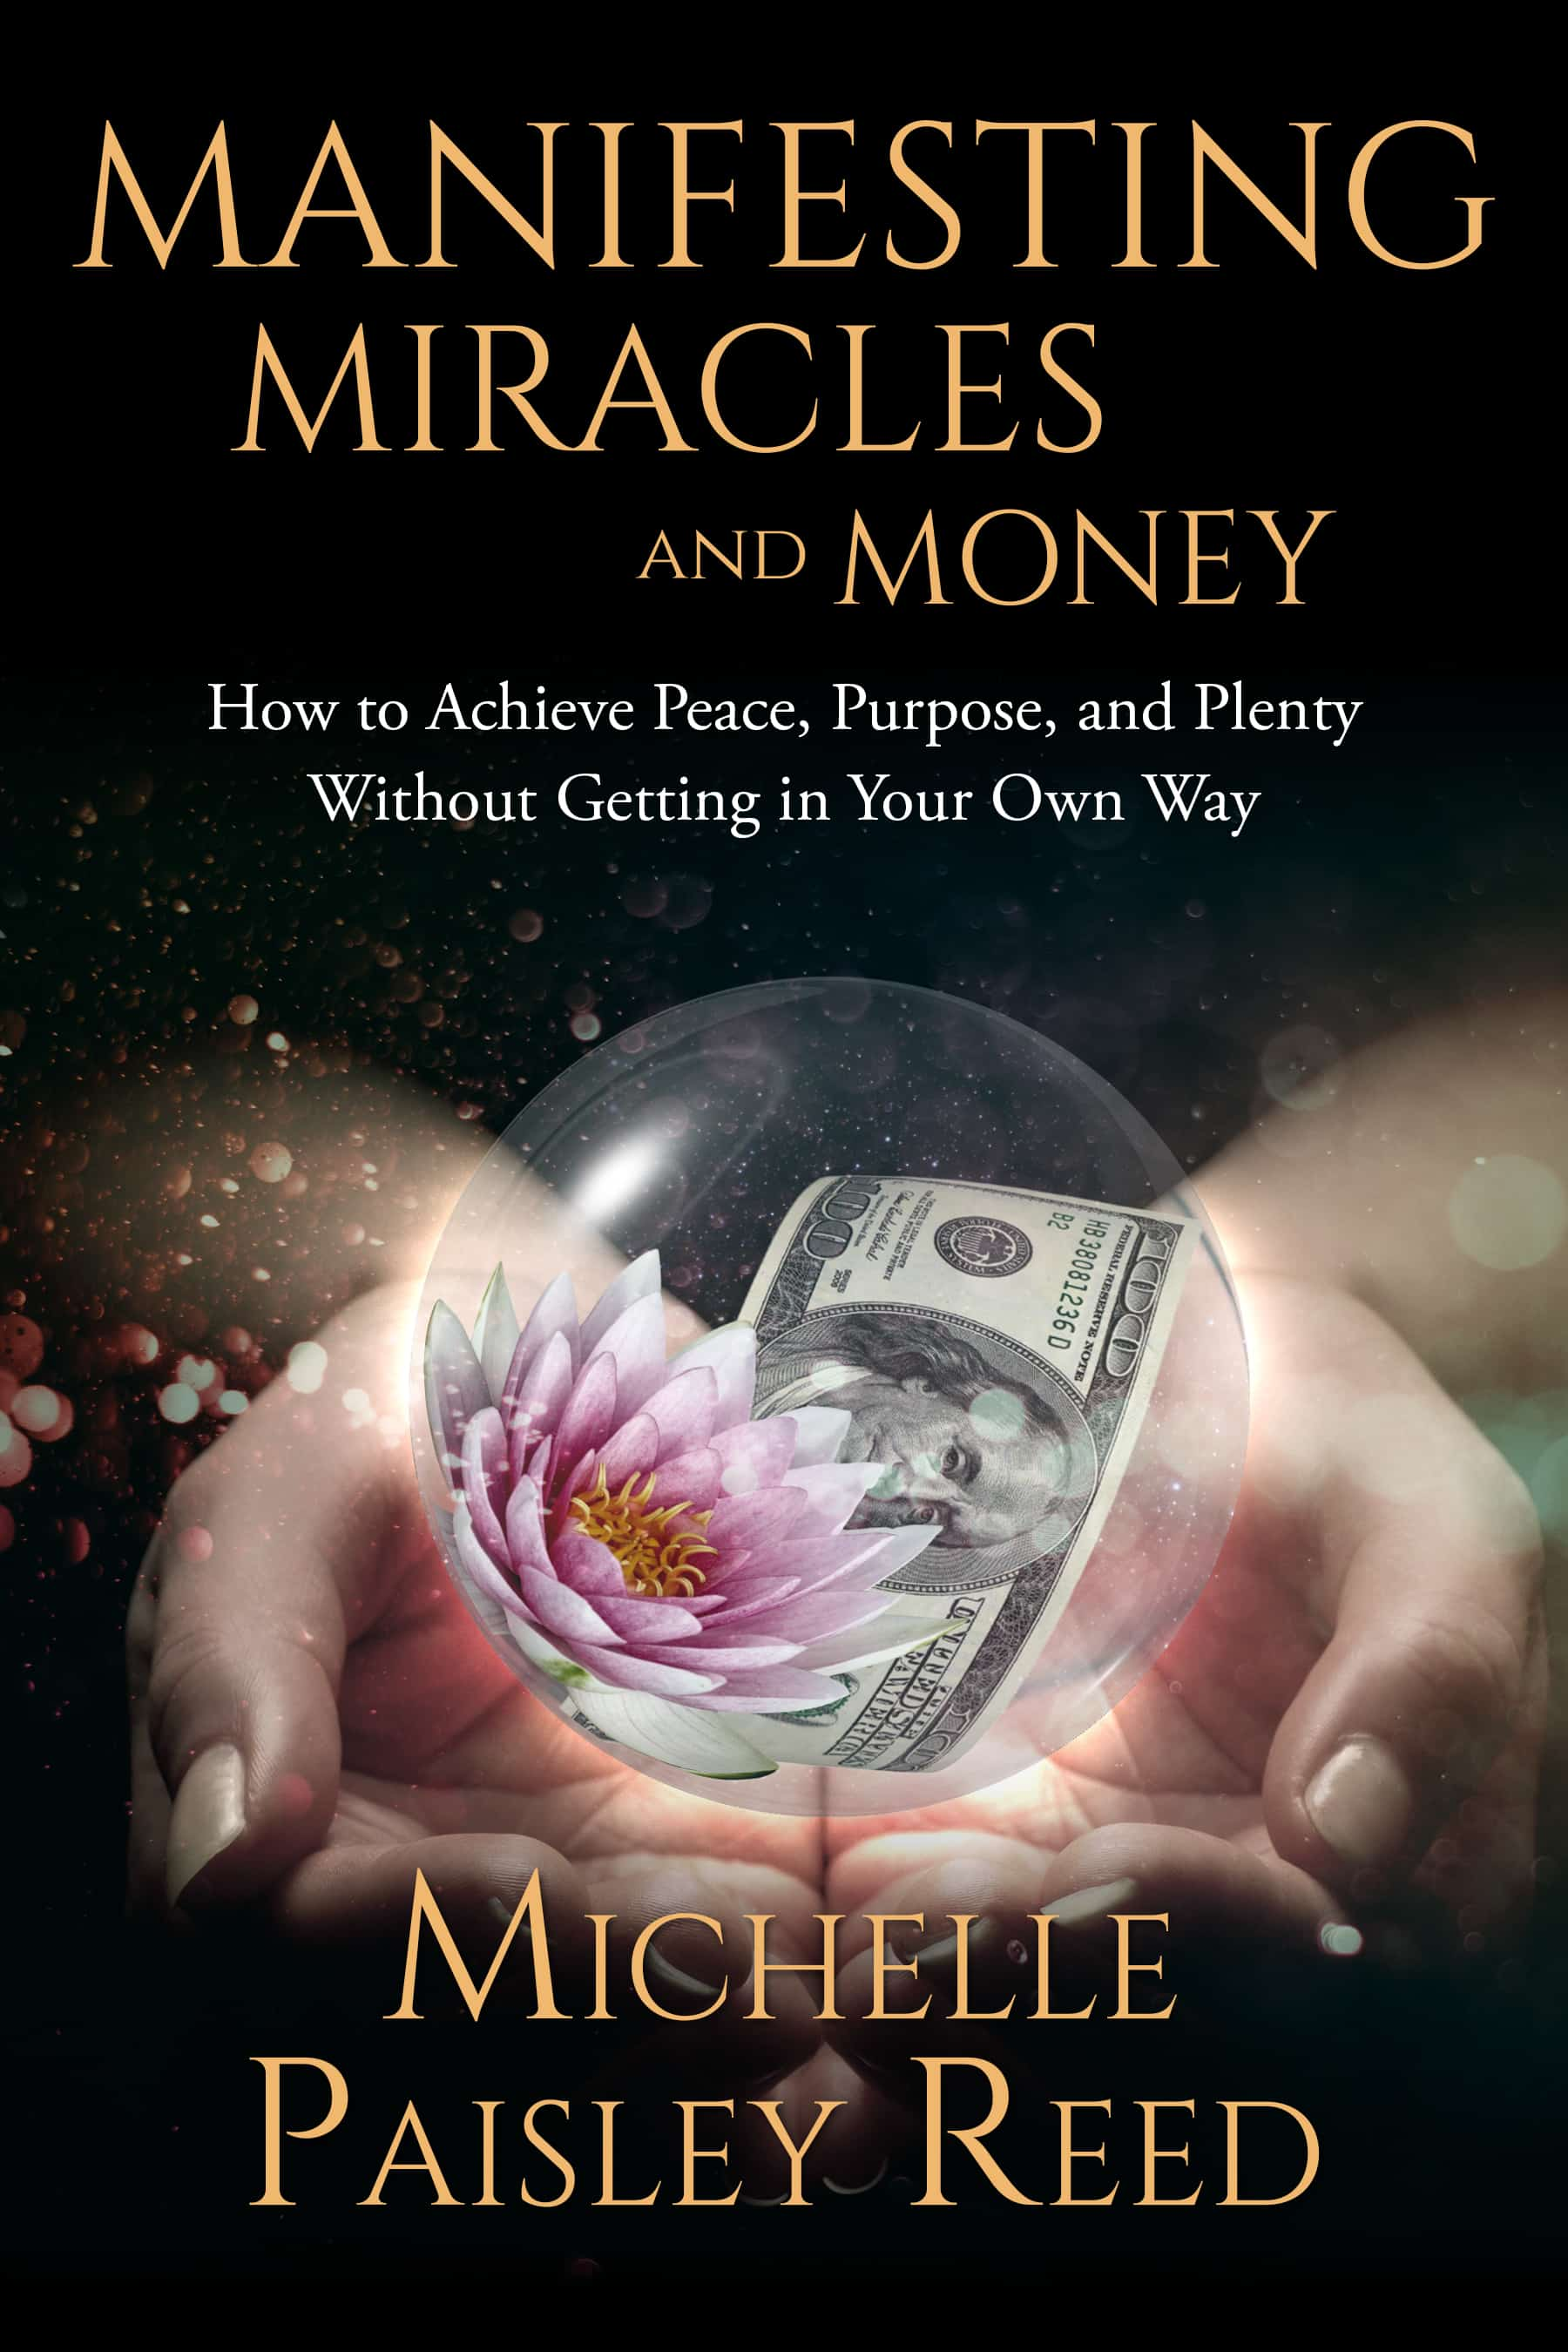 Manifesting Miracles and Money book cover